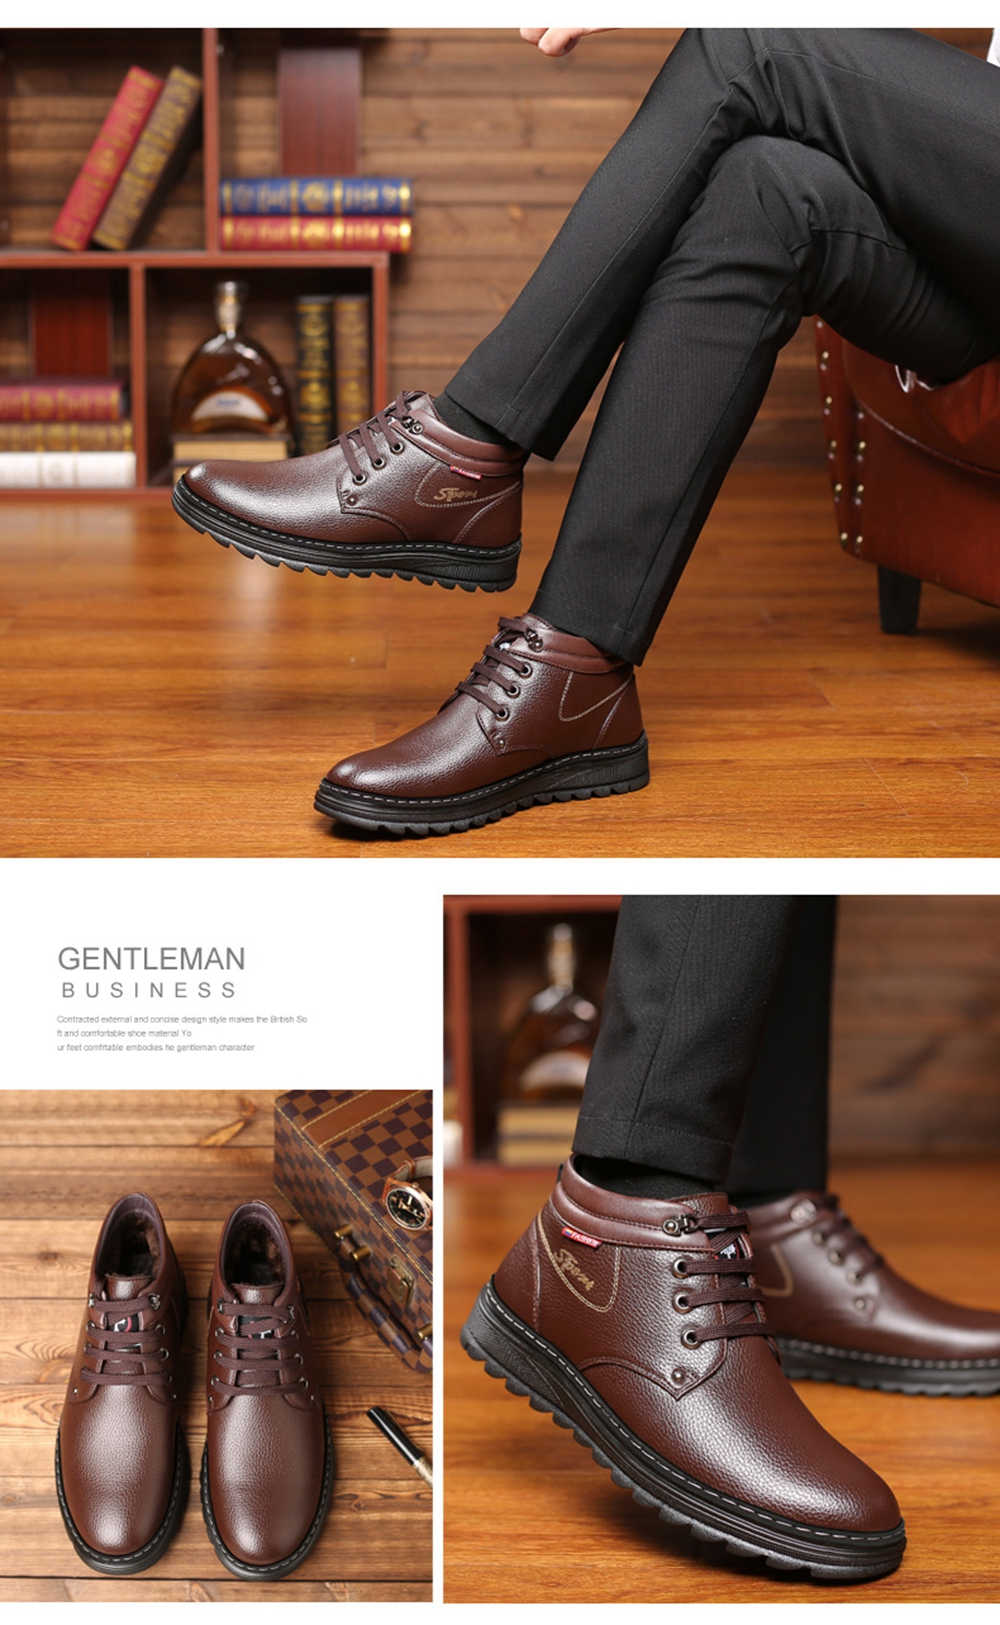 Muhuisen Winter Leather Shoes Warm Working Casual Lace Up Flats Male D Island Oxford Loafers Genuine Brown Boots Black Eu 42